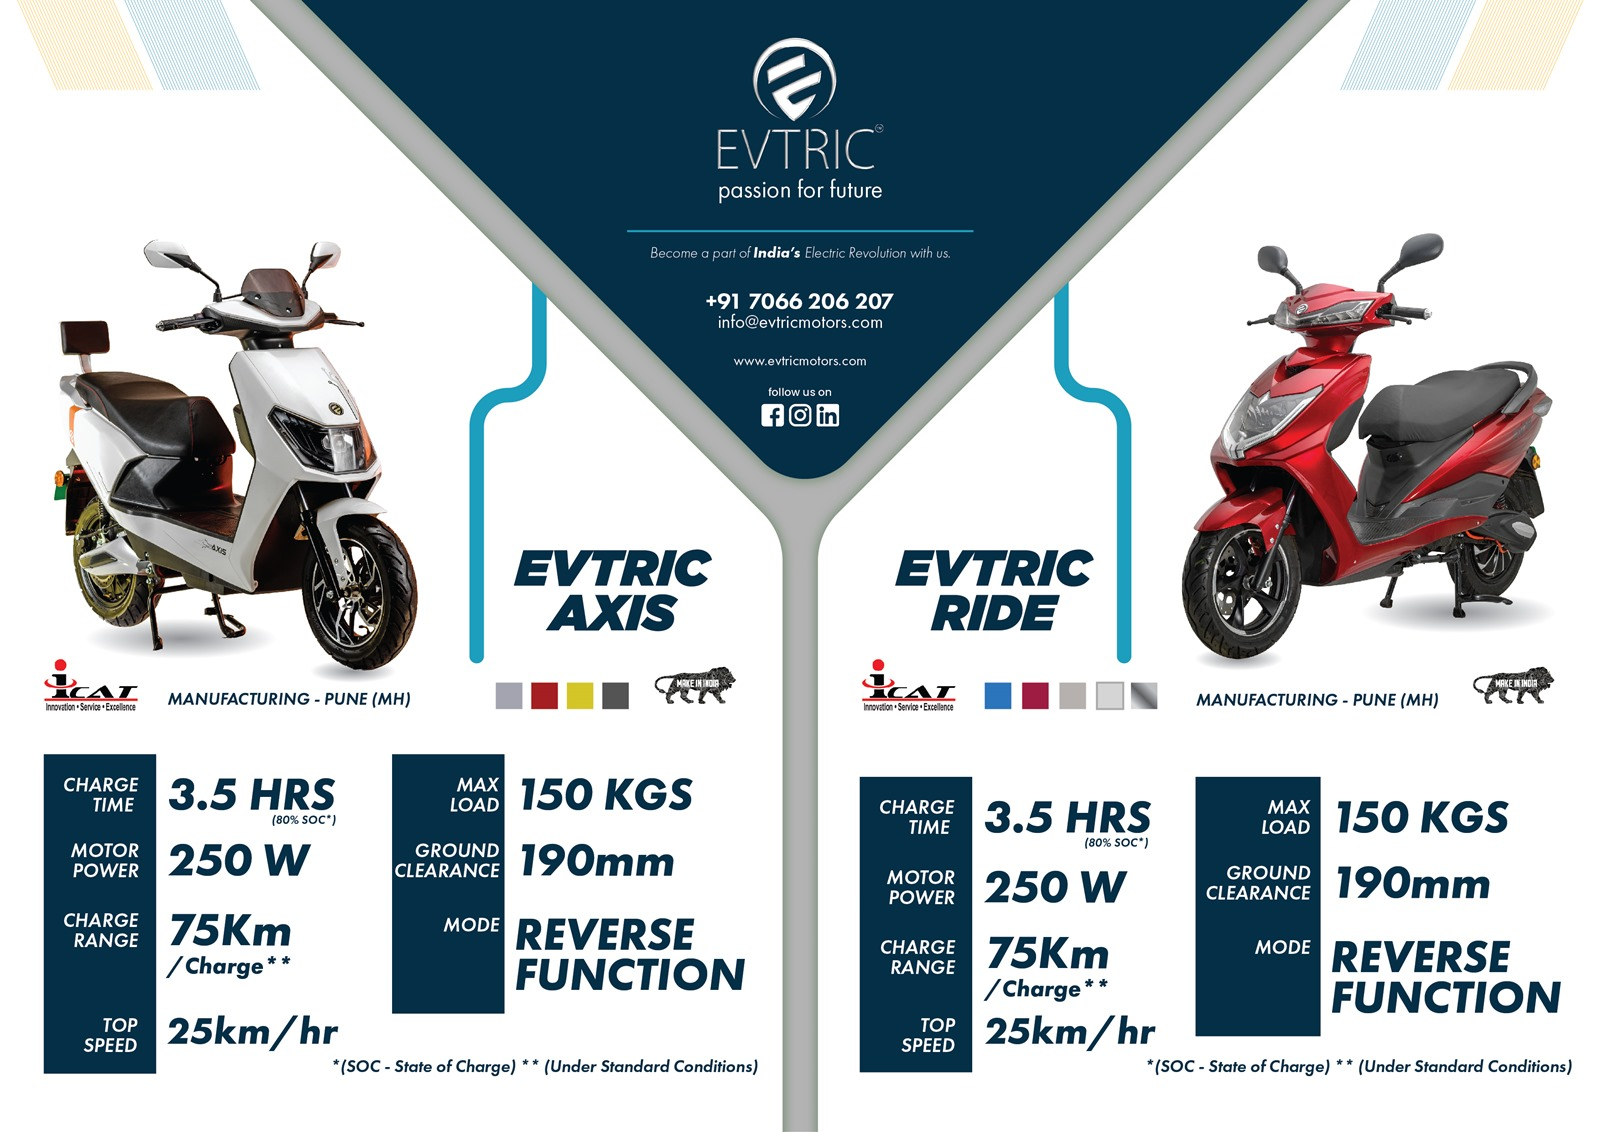 EVTRIC Motors EVTRIC AXIS and EVTRIC RIDE